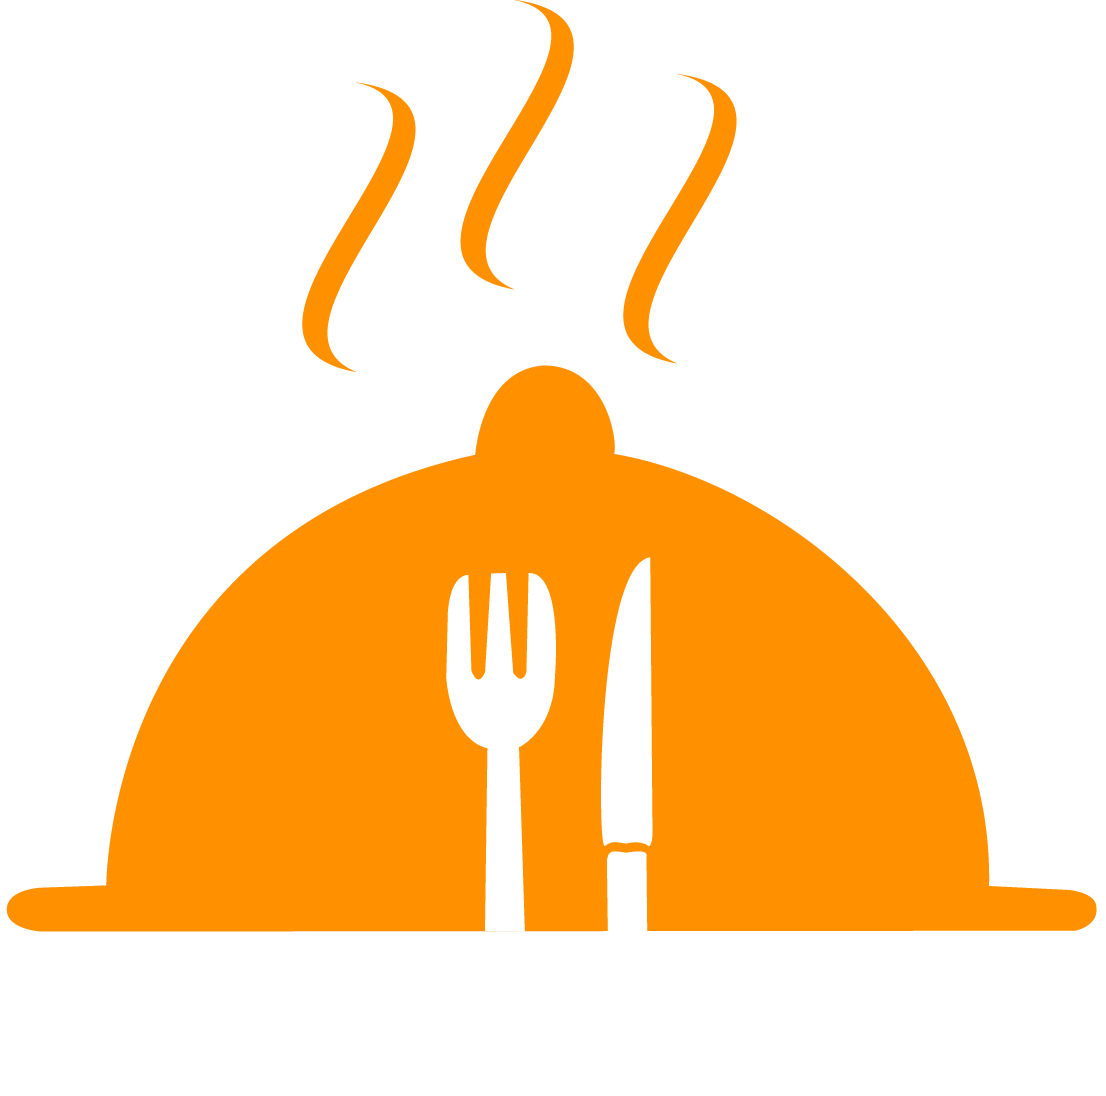 Grietje's catering